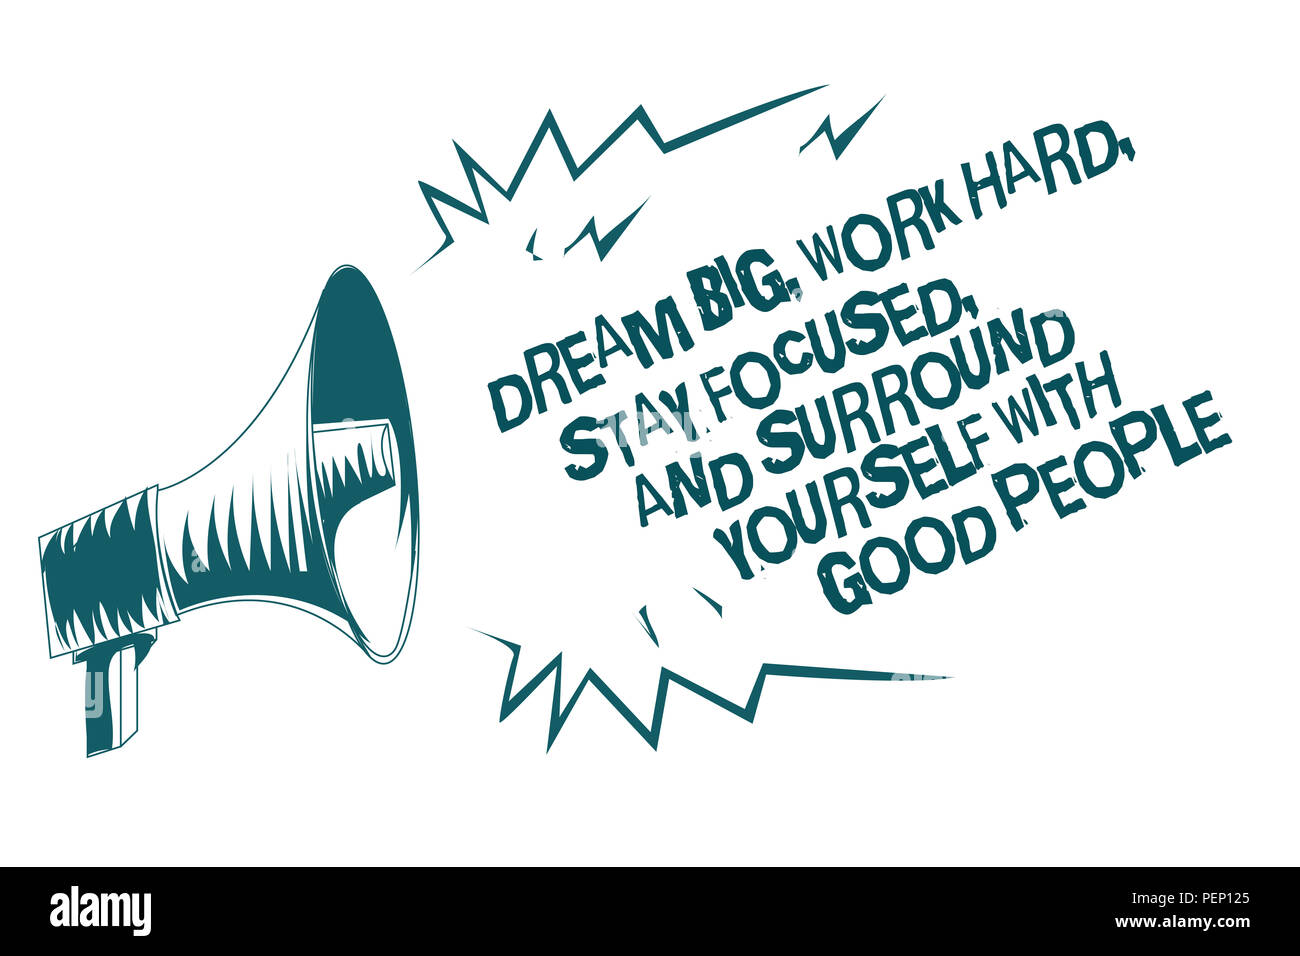 Text sign showing Dream Big, Work Hard, Stay Focused, And Surround Yourself With Good People. Conceptual photo 0 Gray megaphone loudspeaker important  - Stock Image